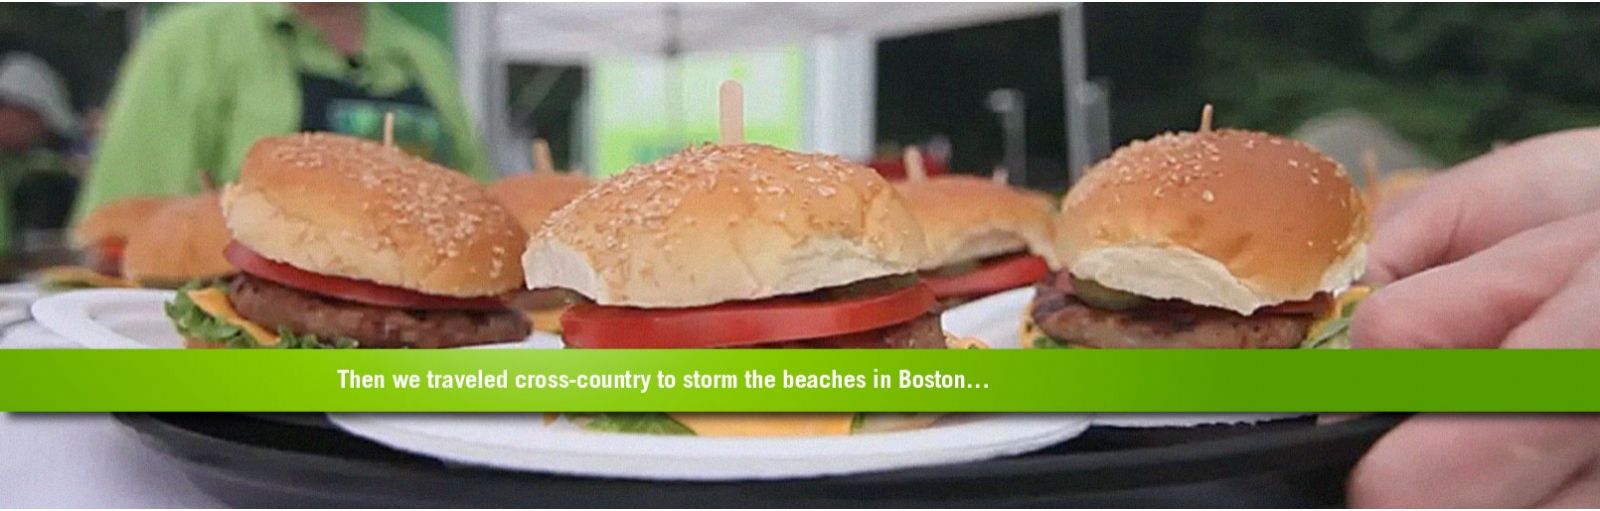 Then we traveled cross-country to storm the beaches in Boston...